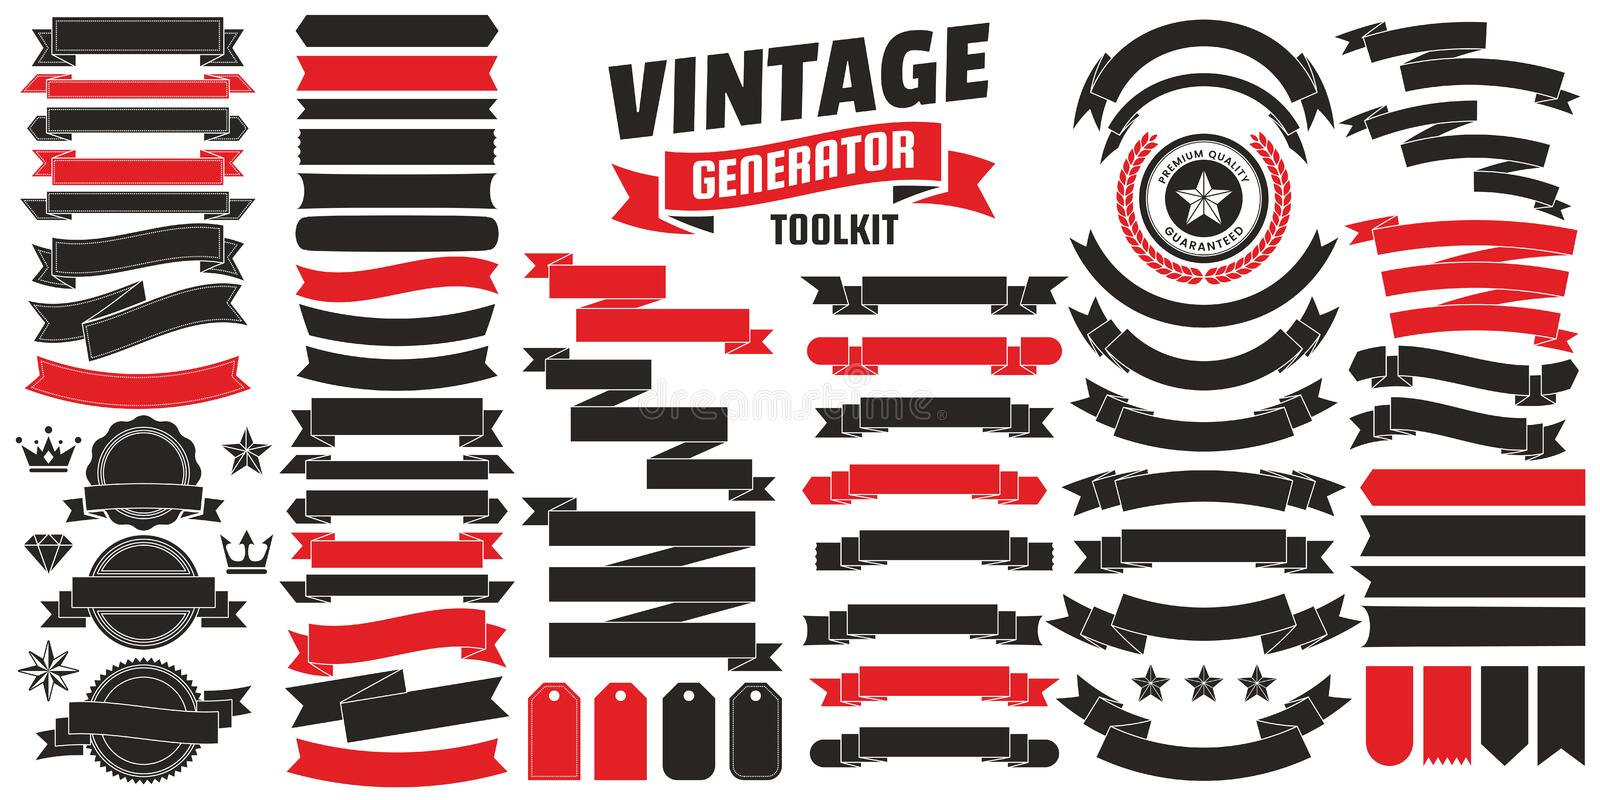 Vintage Retro Vector Logo for banner. Poster, flyer